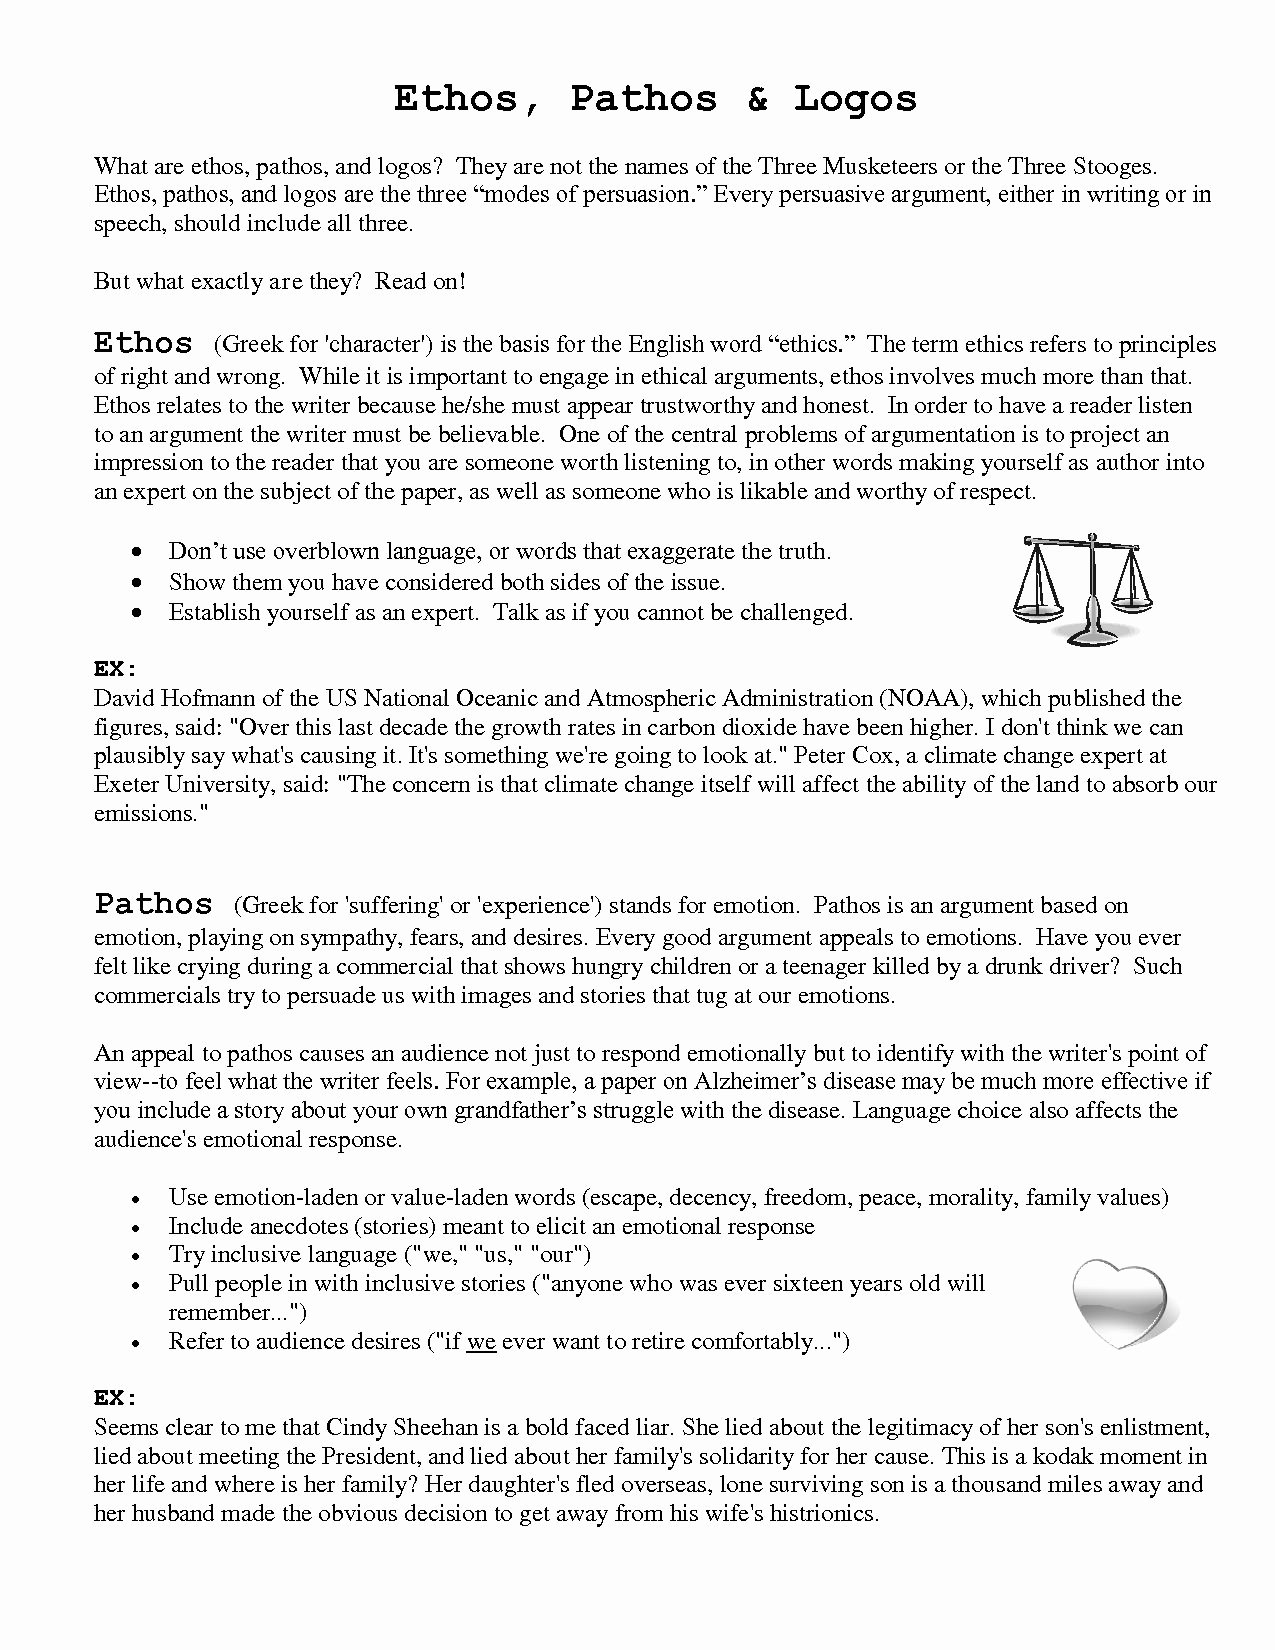 Ethos Pathos Logos Worksheet Fresh Persuasive Language Using Ethos Pathos and Logos Worksheet